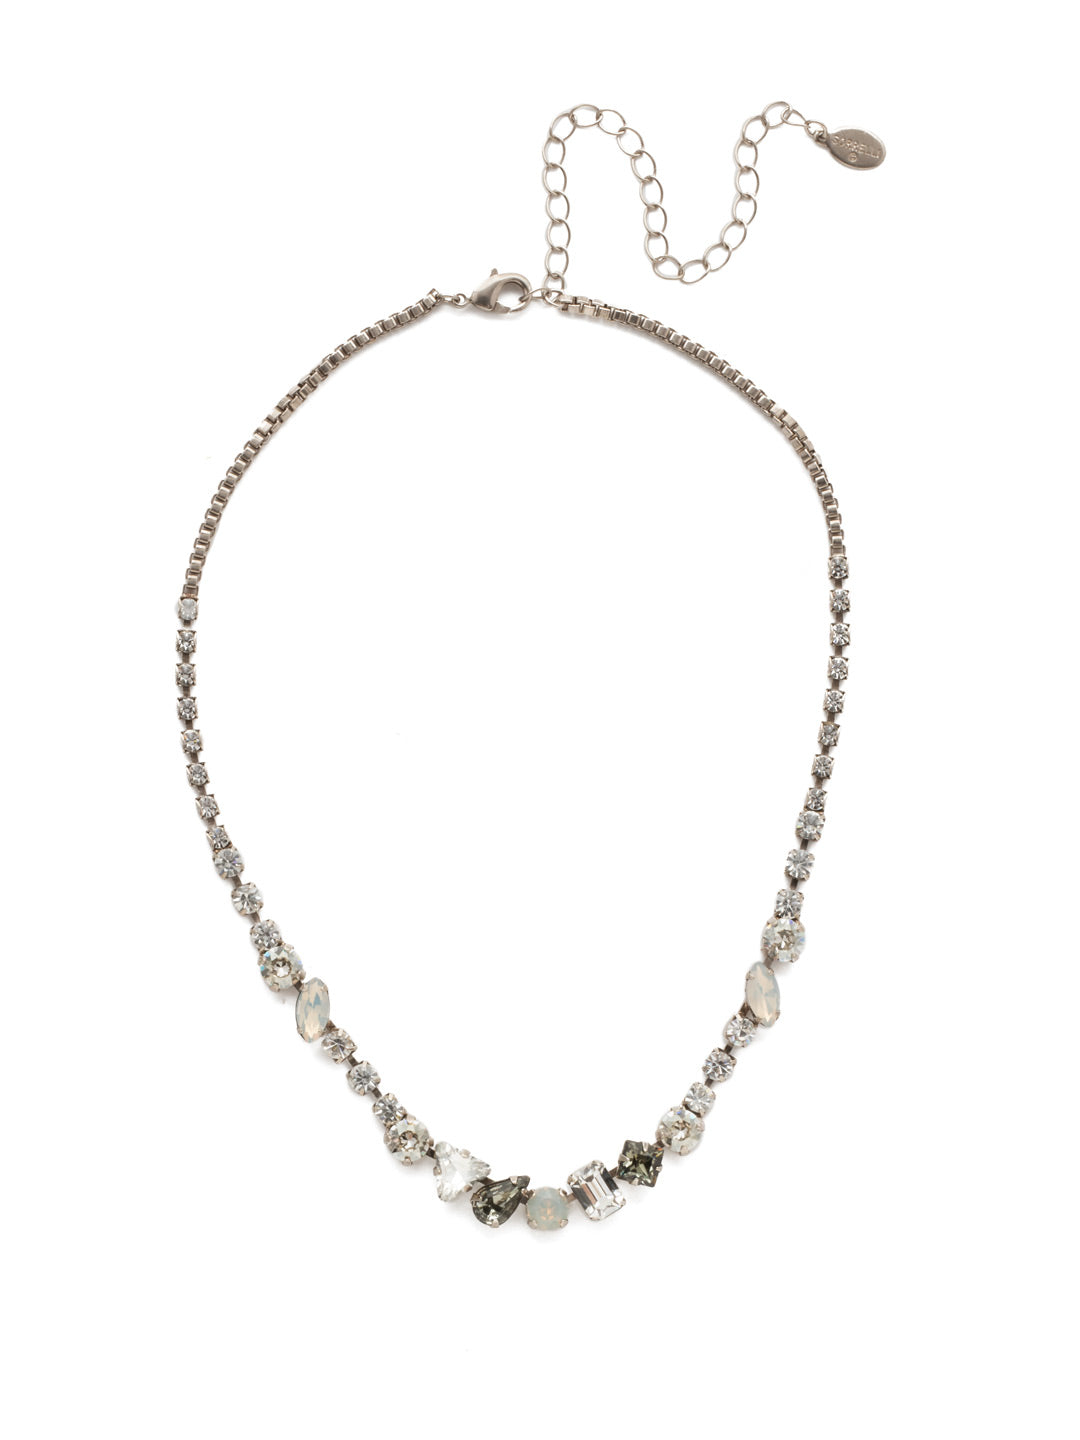 Sonja Tennis Necklace - NEN12ASSTC